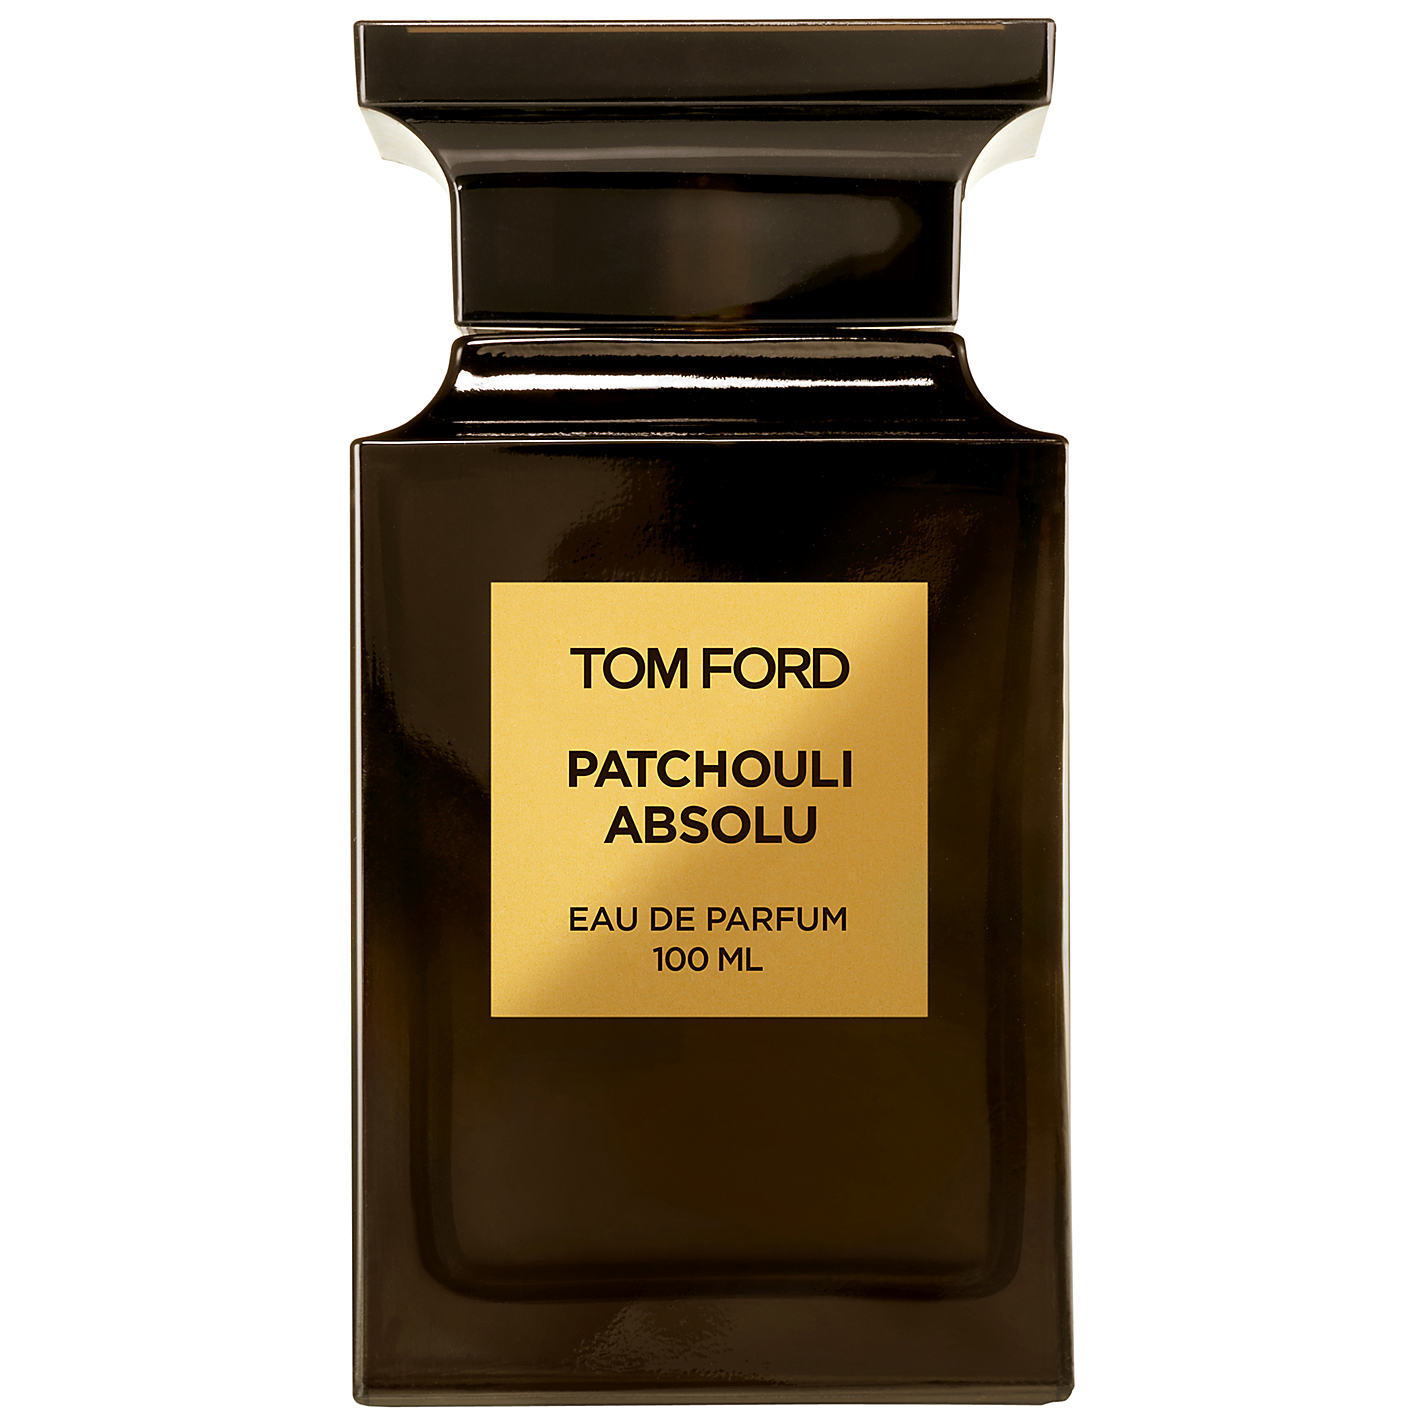 PATCHOULI ABSOLU by TOM FORD 5ml Travel Spray VETIVER Parfum Perfume